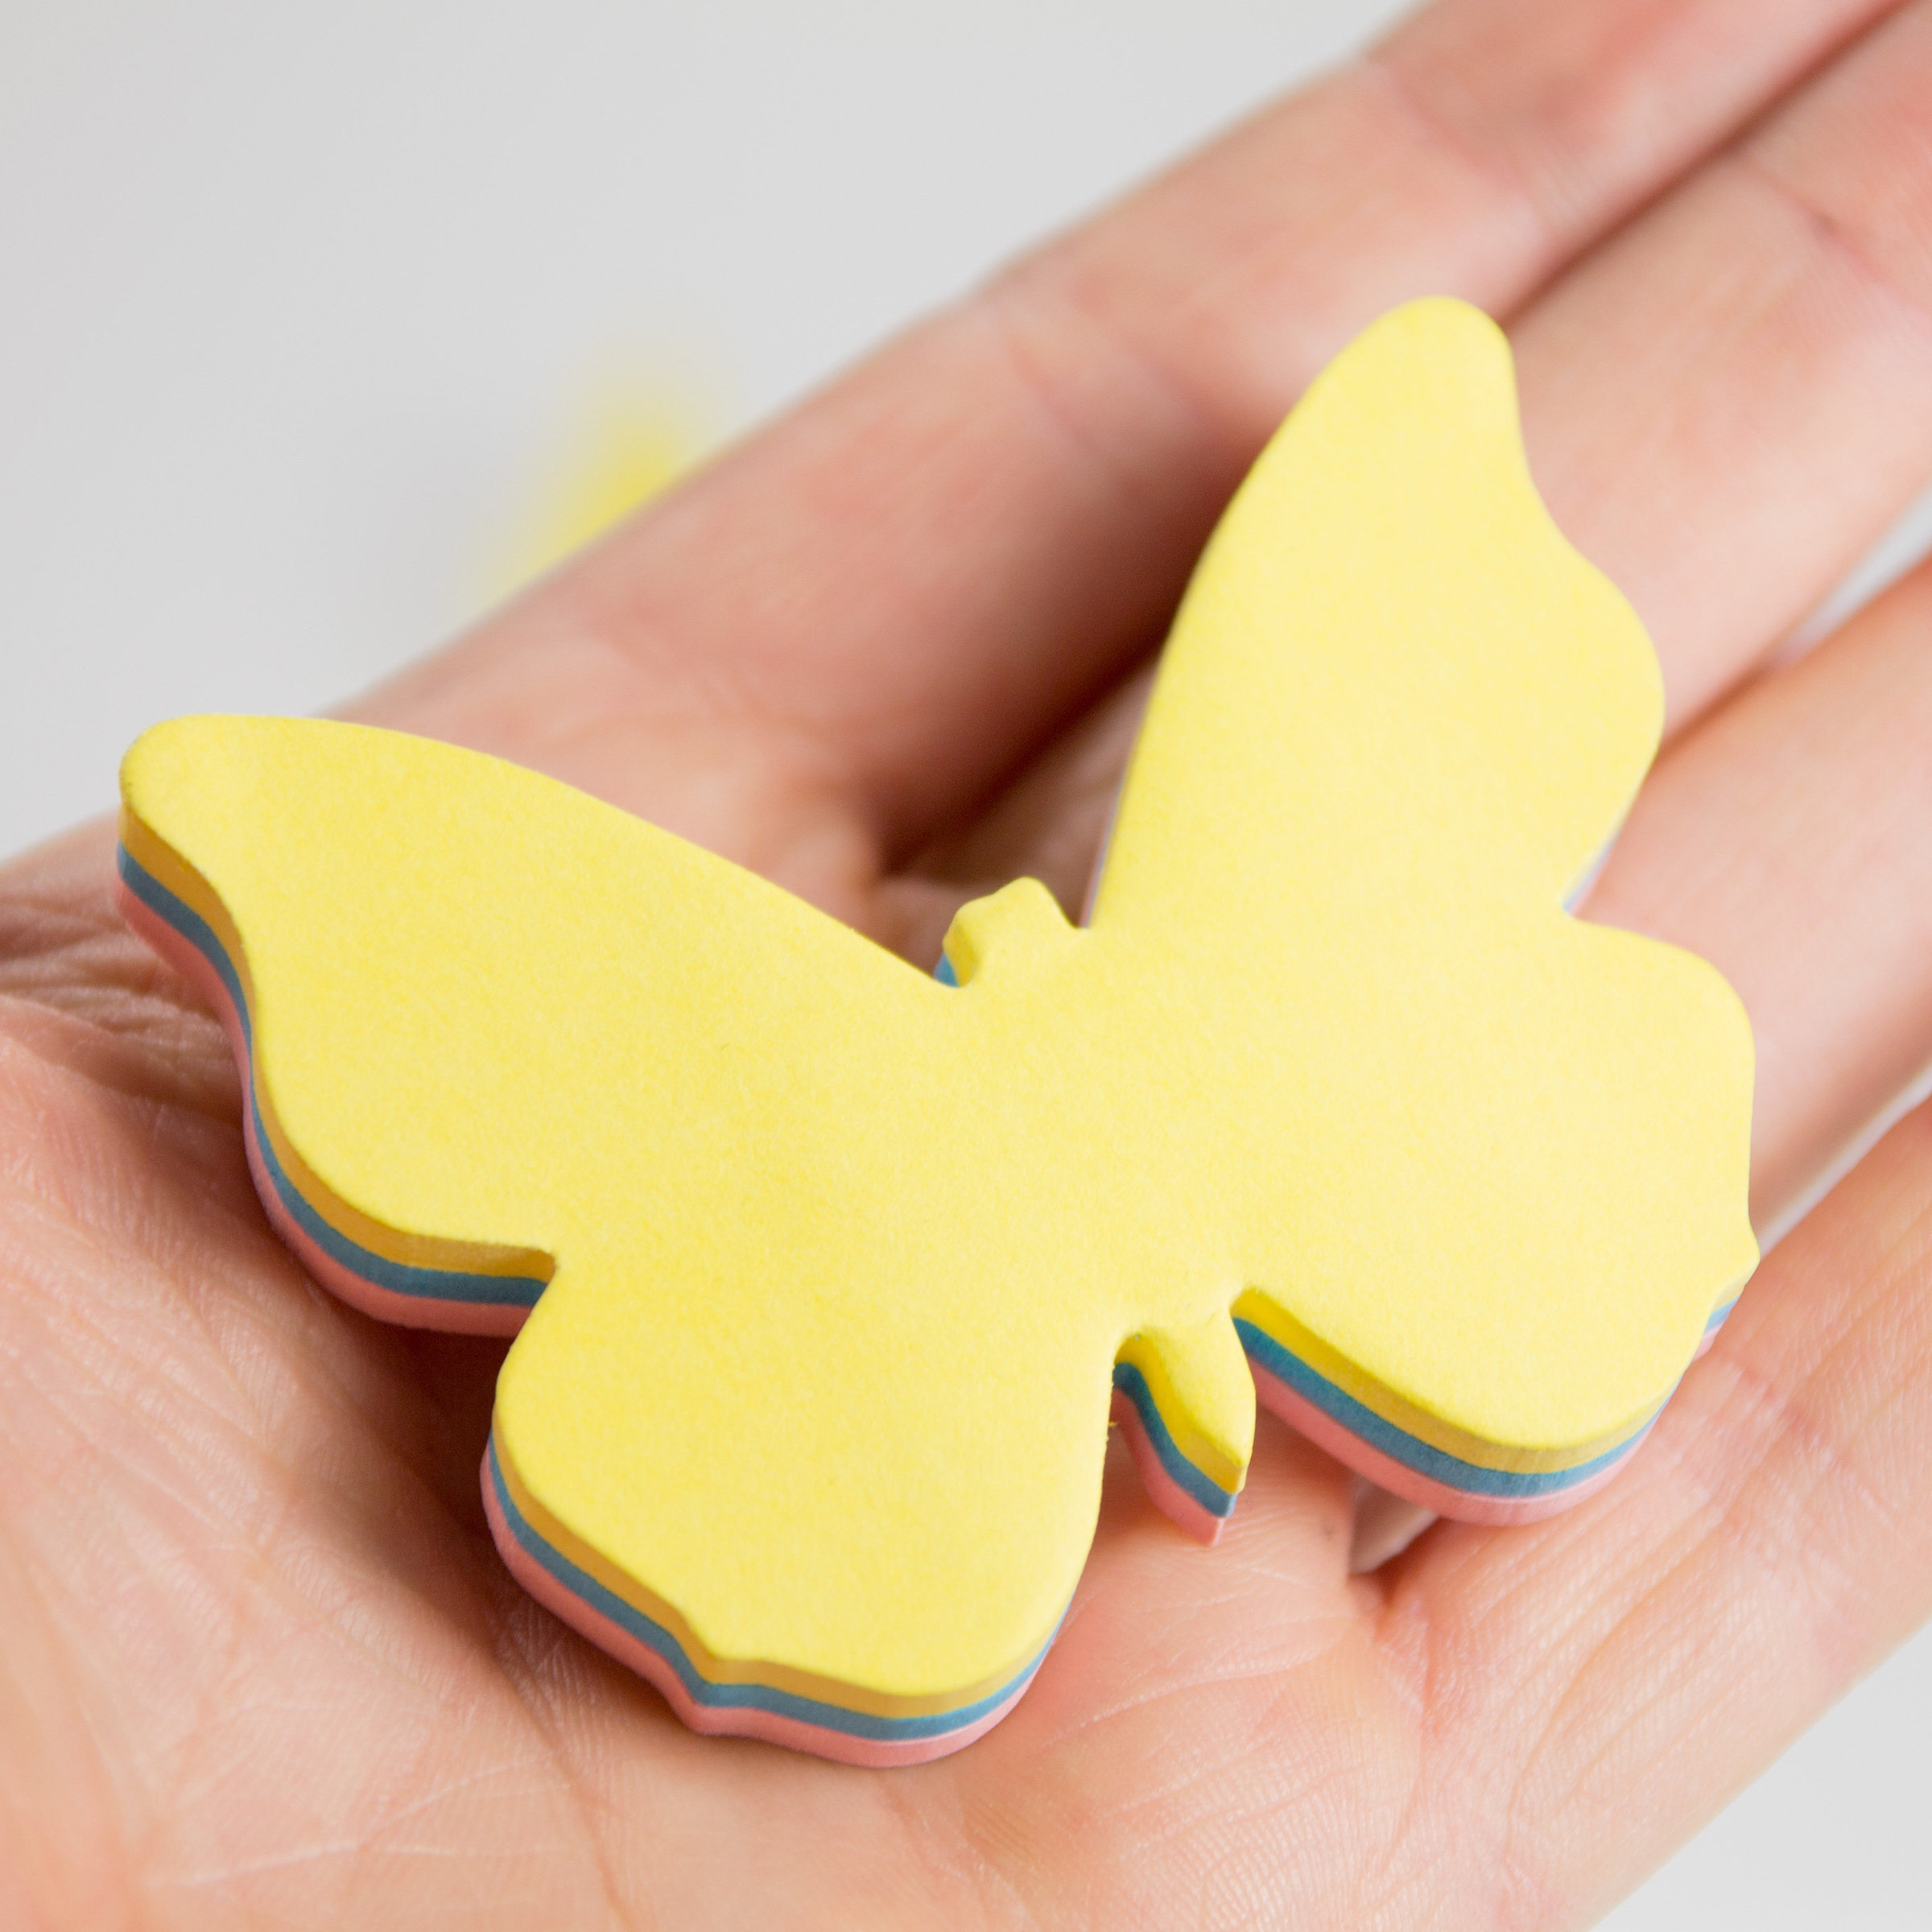 Butterfly sticky note pads in a hand